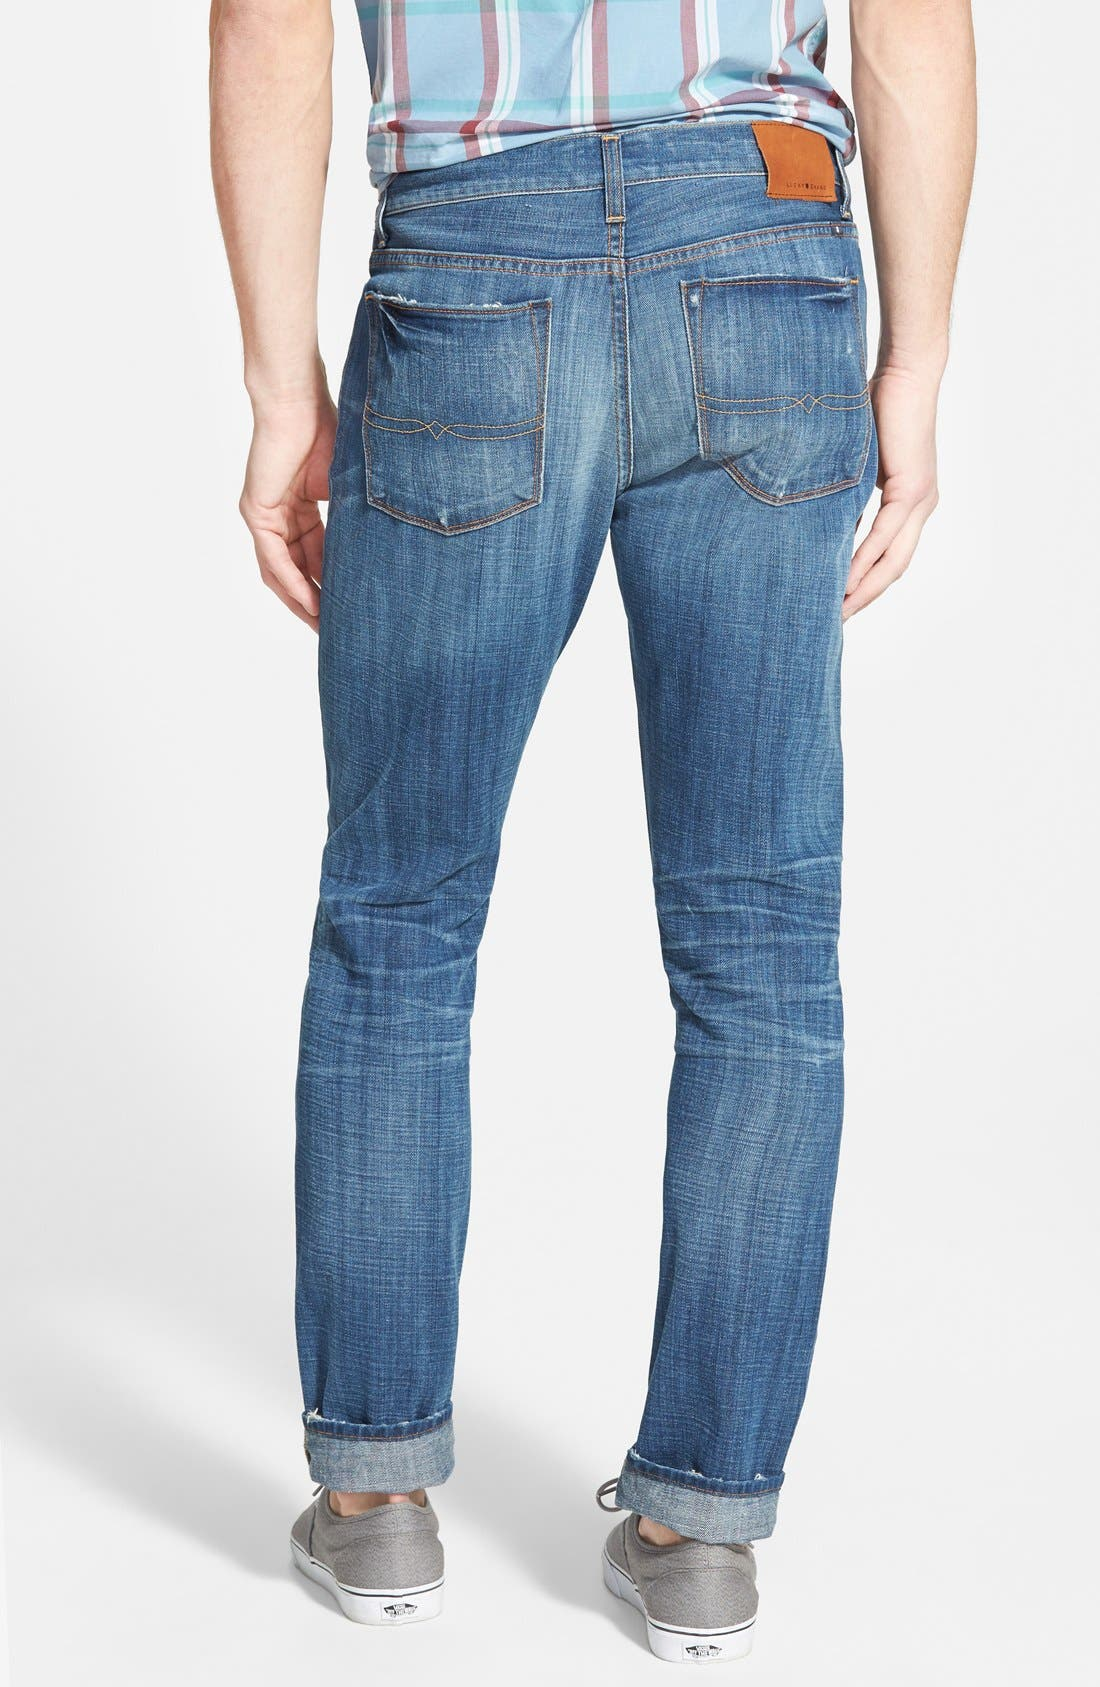 '1 Authentic' Skinny Fit Jeans,                             Alternate thumbnail 4, color,                             420